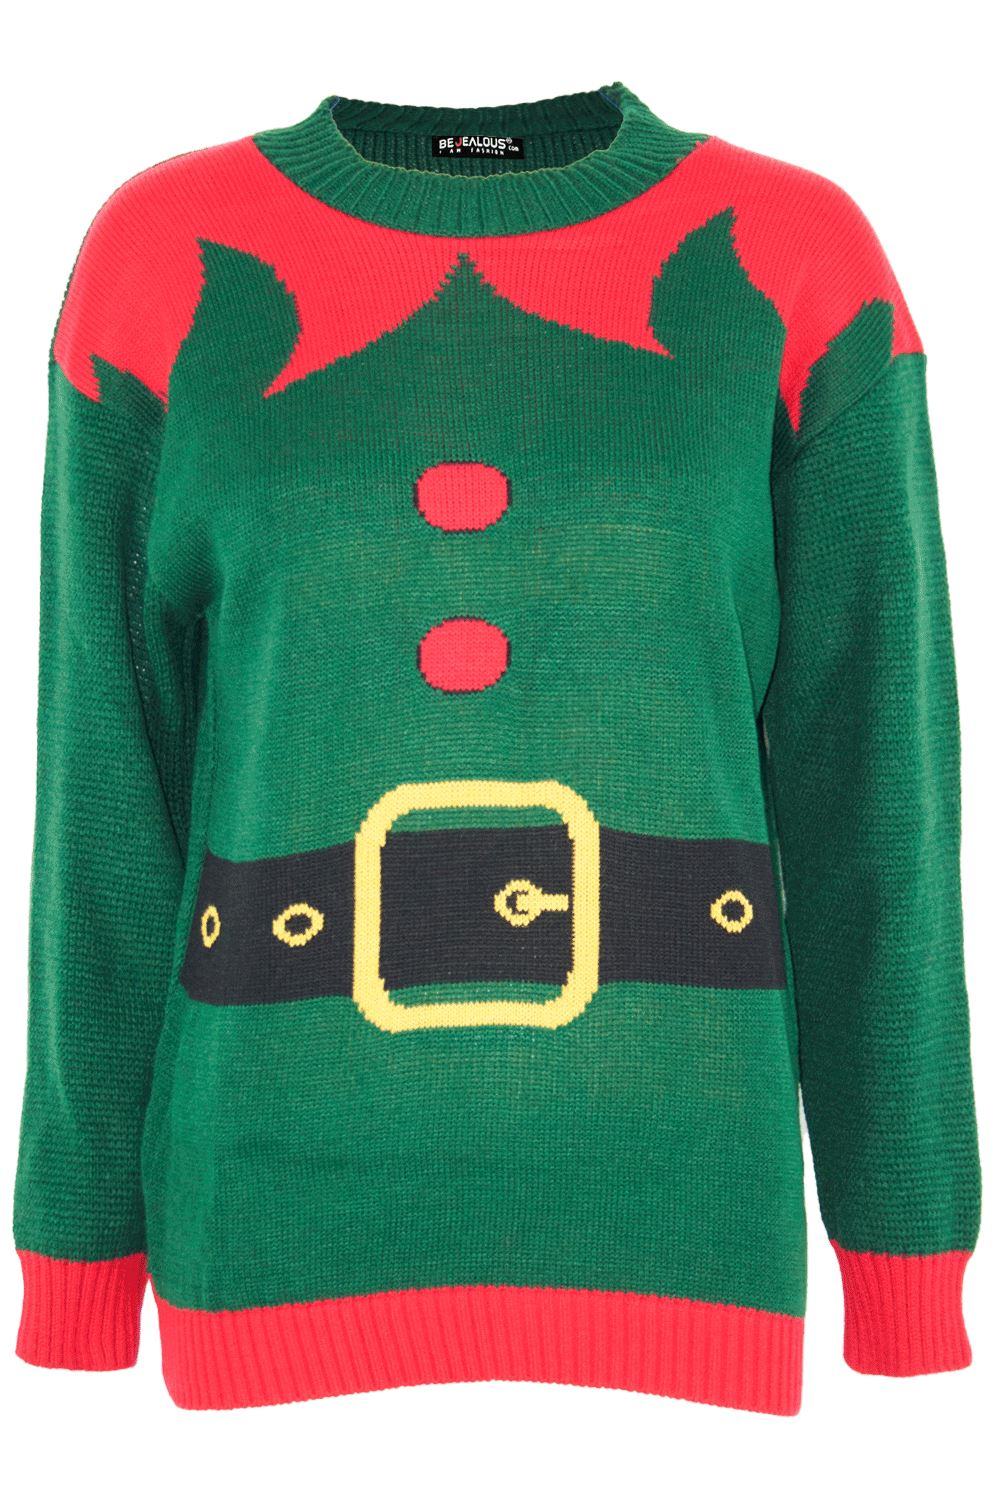 Womens Unisex Mens Christmas Santa Candy Knitted Sweater Compass Print Jumper